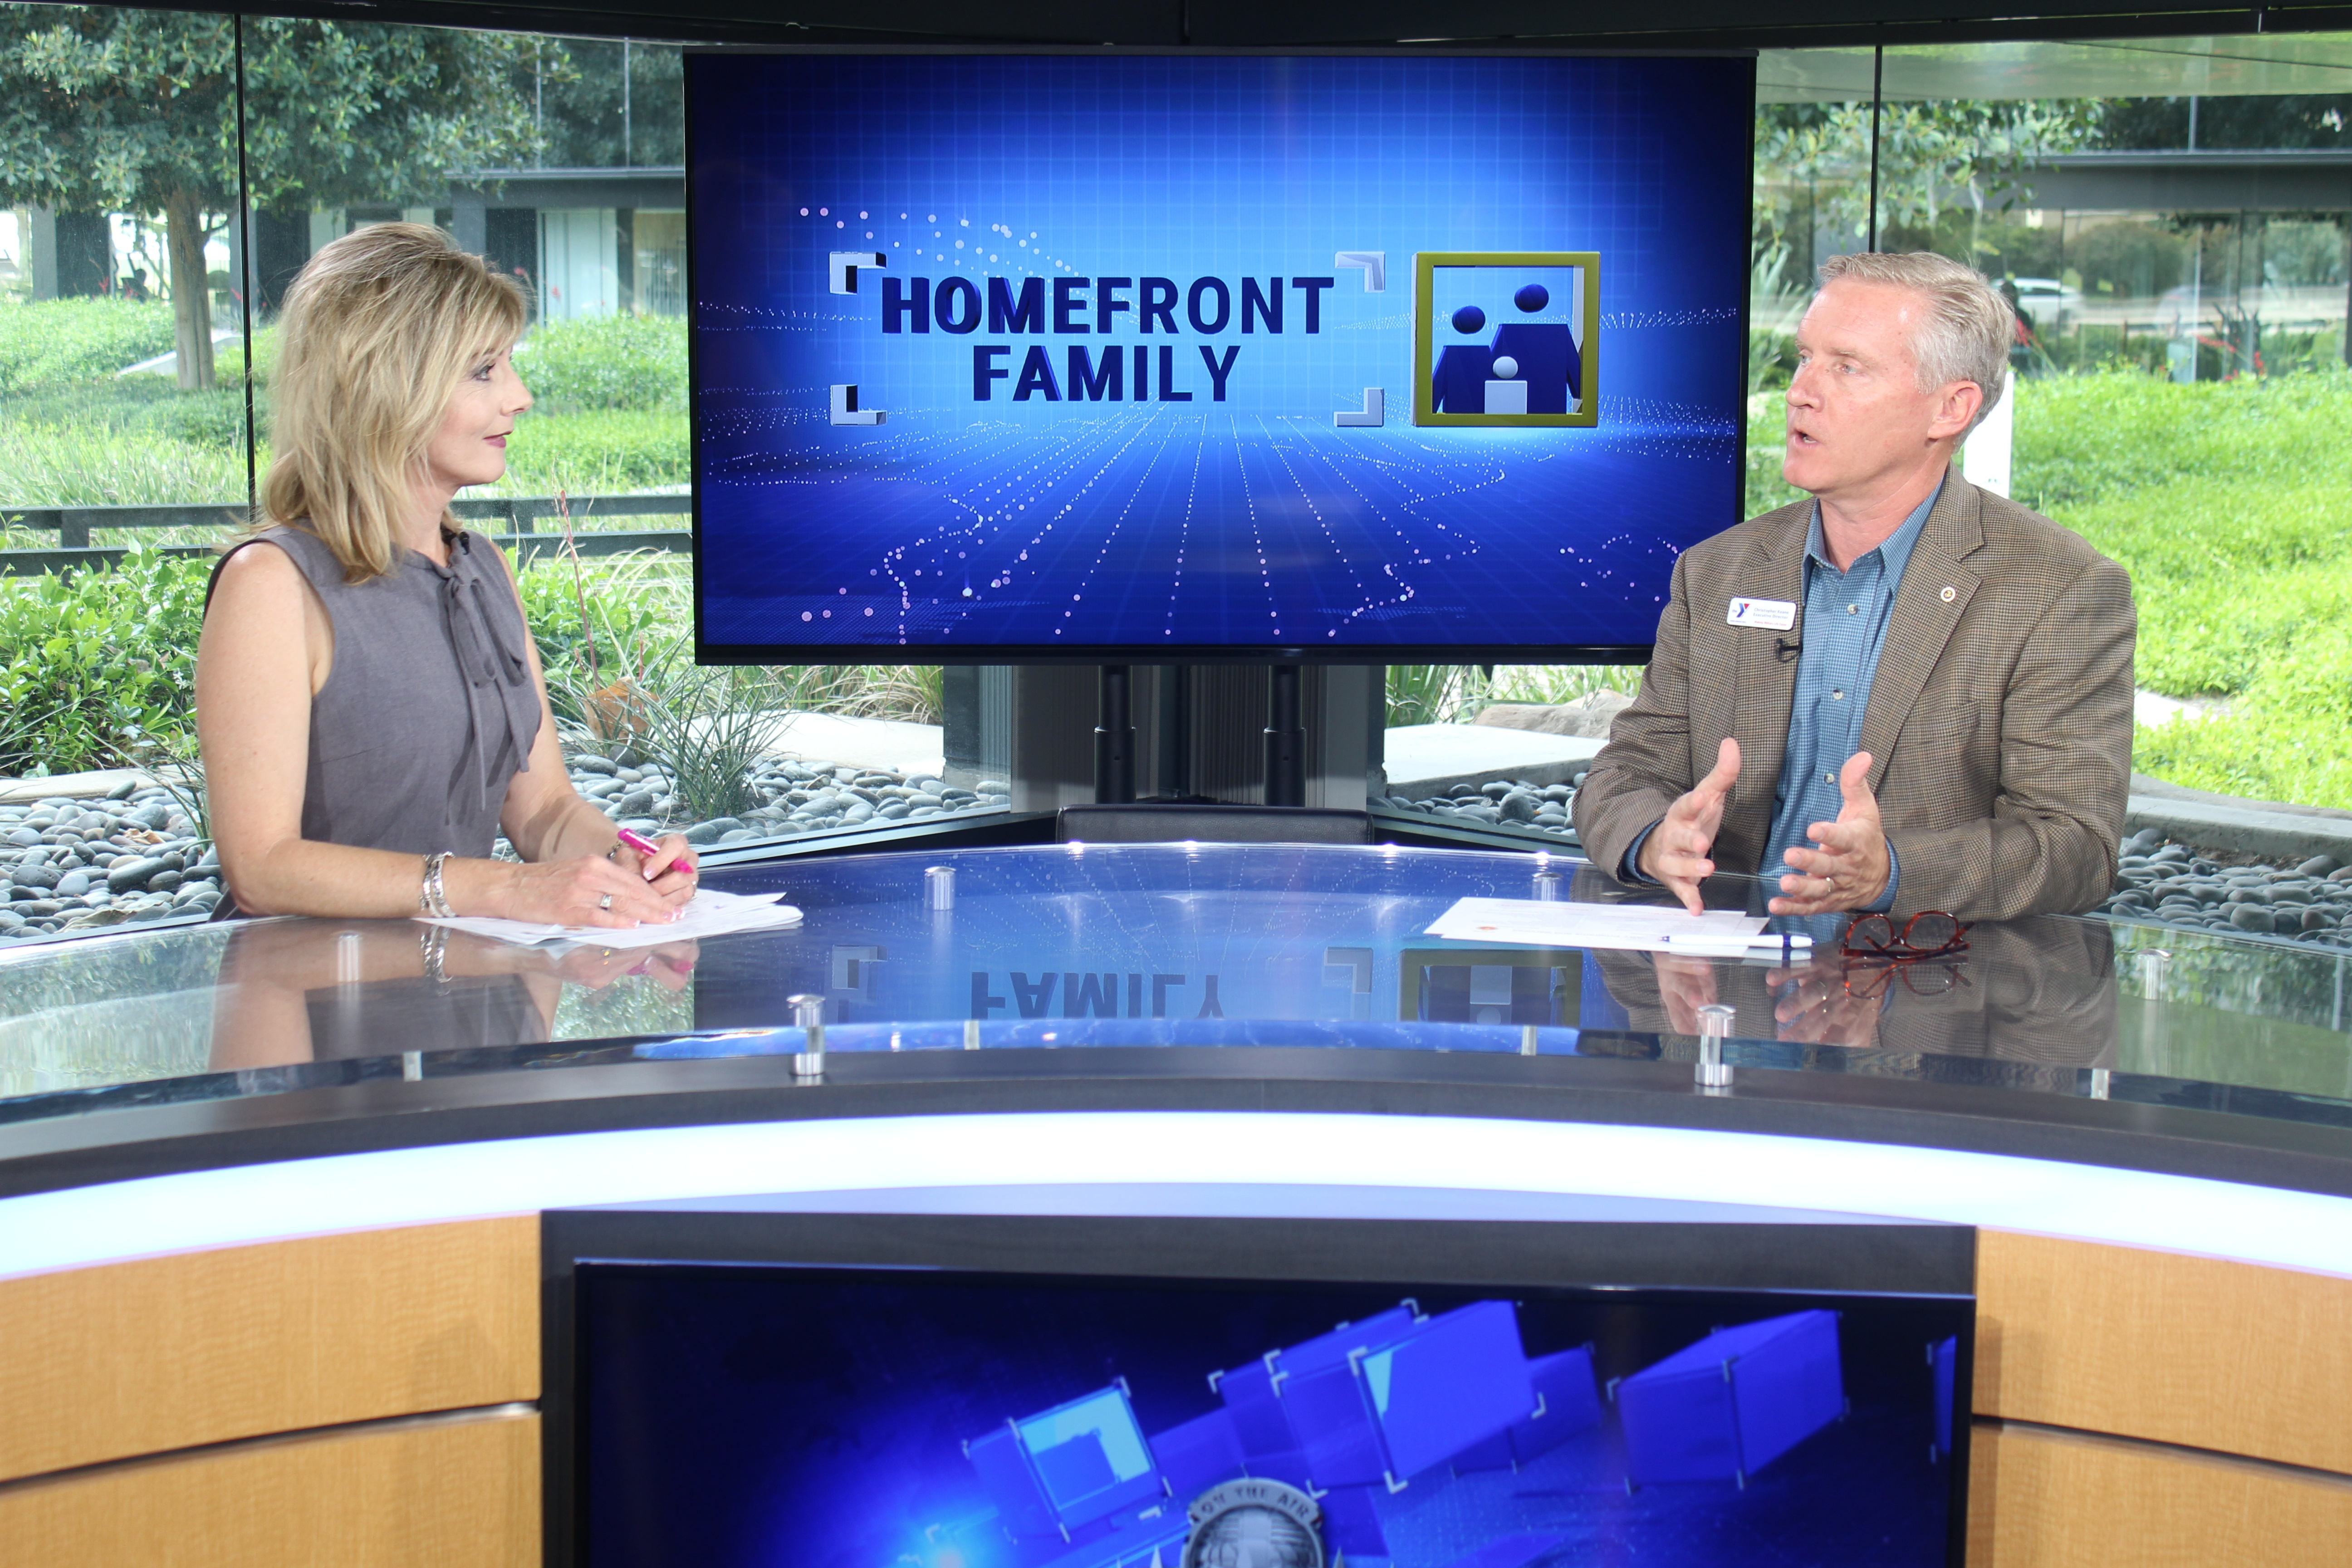 home front san diego camp pendleton asymca interview military children